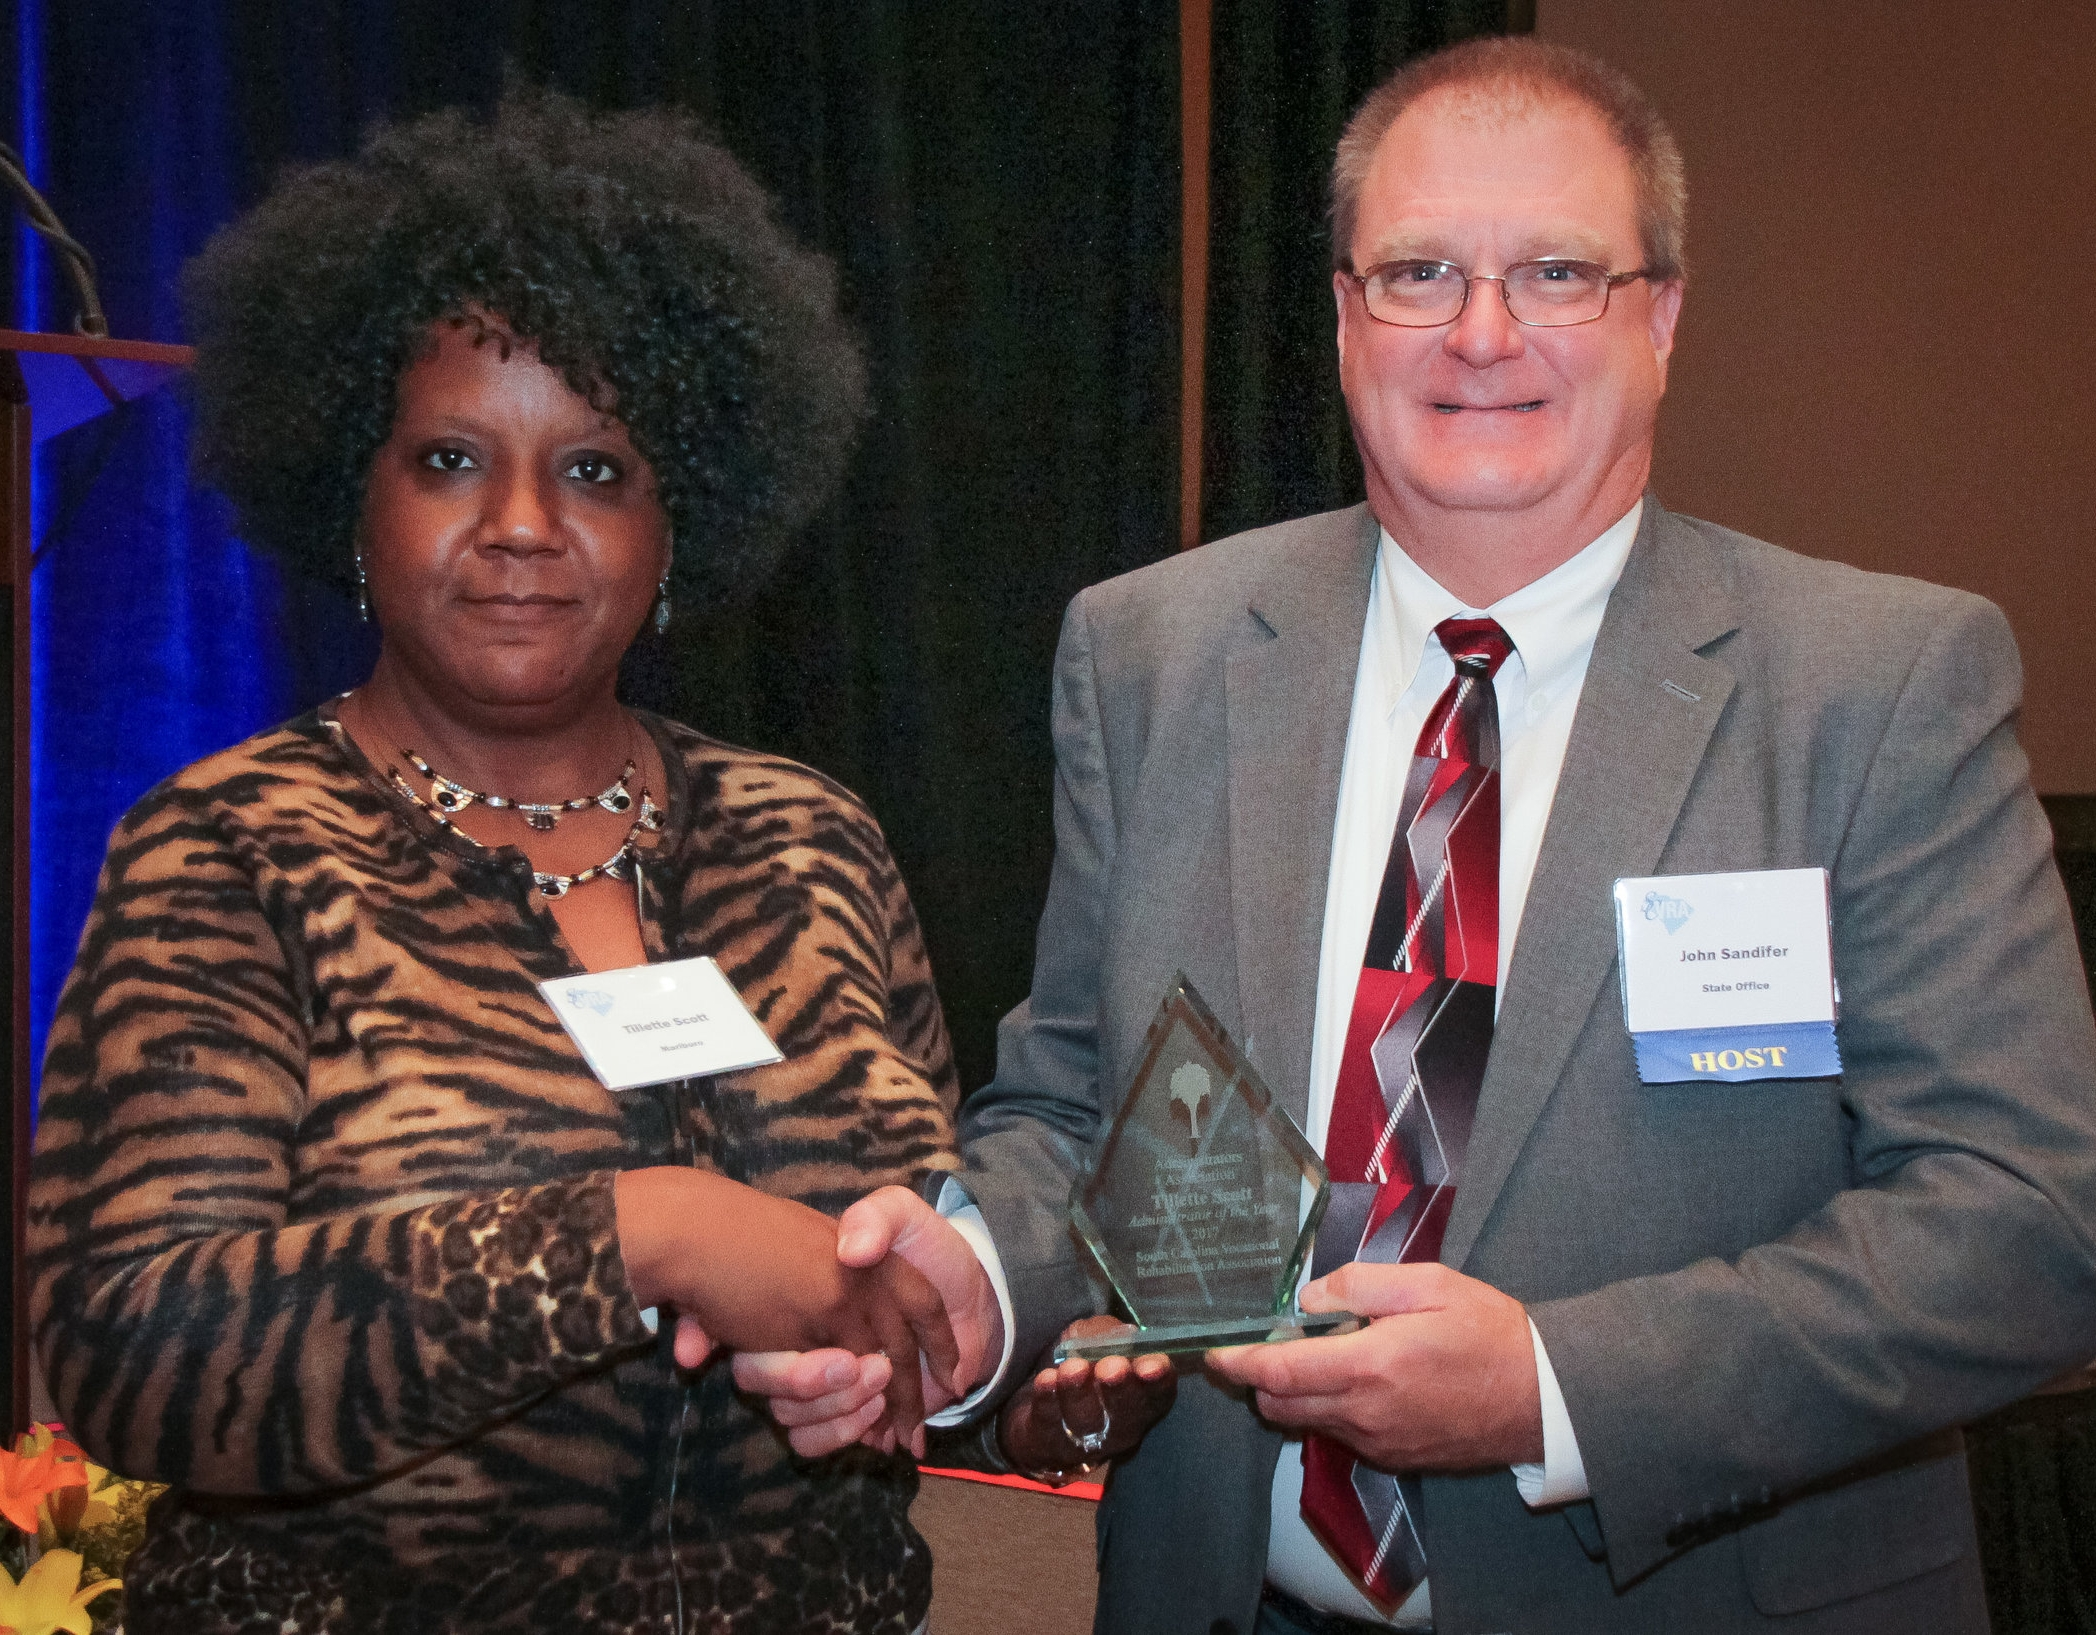 Tillette Scott, (right), Marlboro Area Supervisor, receives the Administrator of the Year award from the SCVRA Administrators' Association from John Sandifer, SCVRAA President.